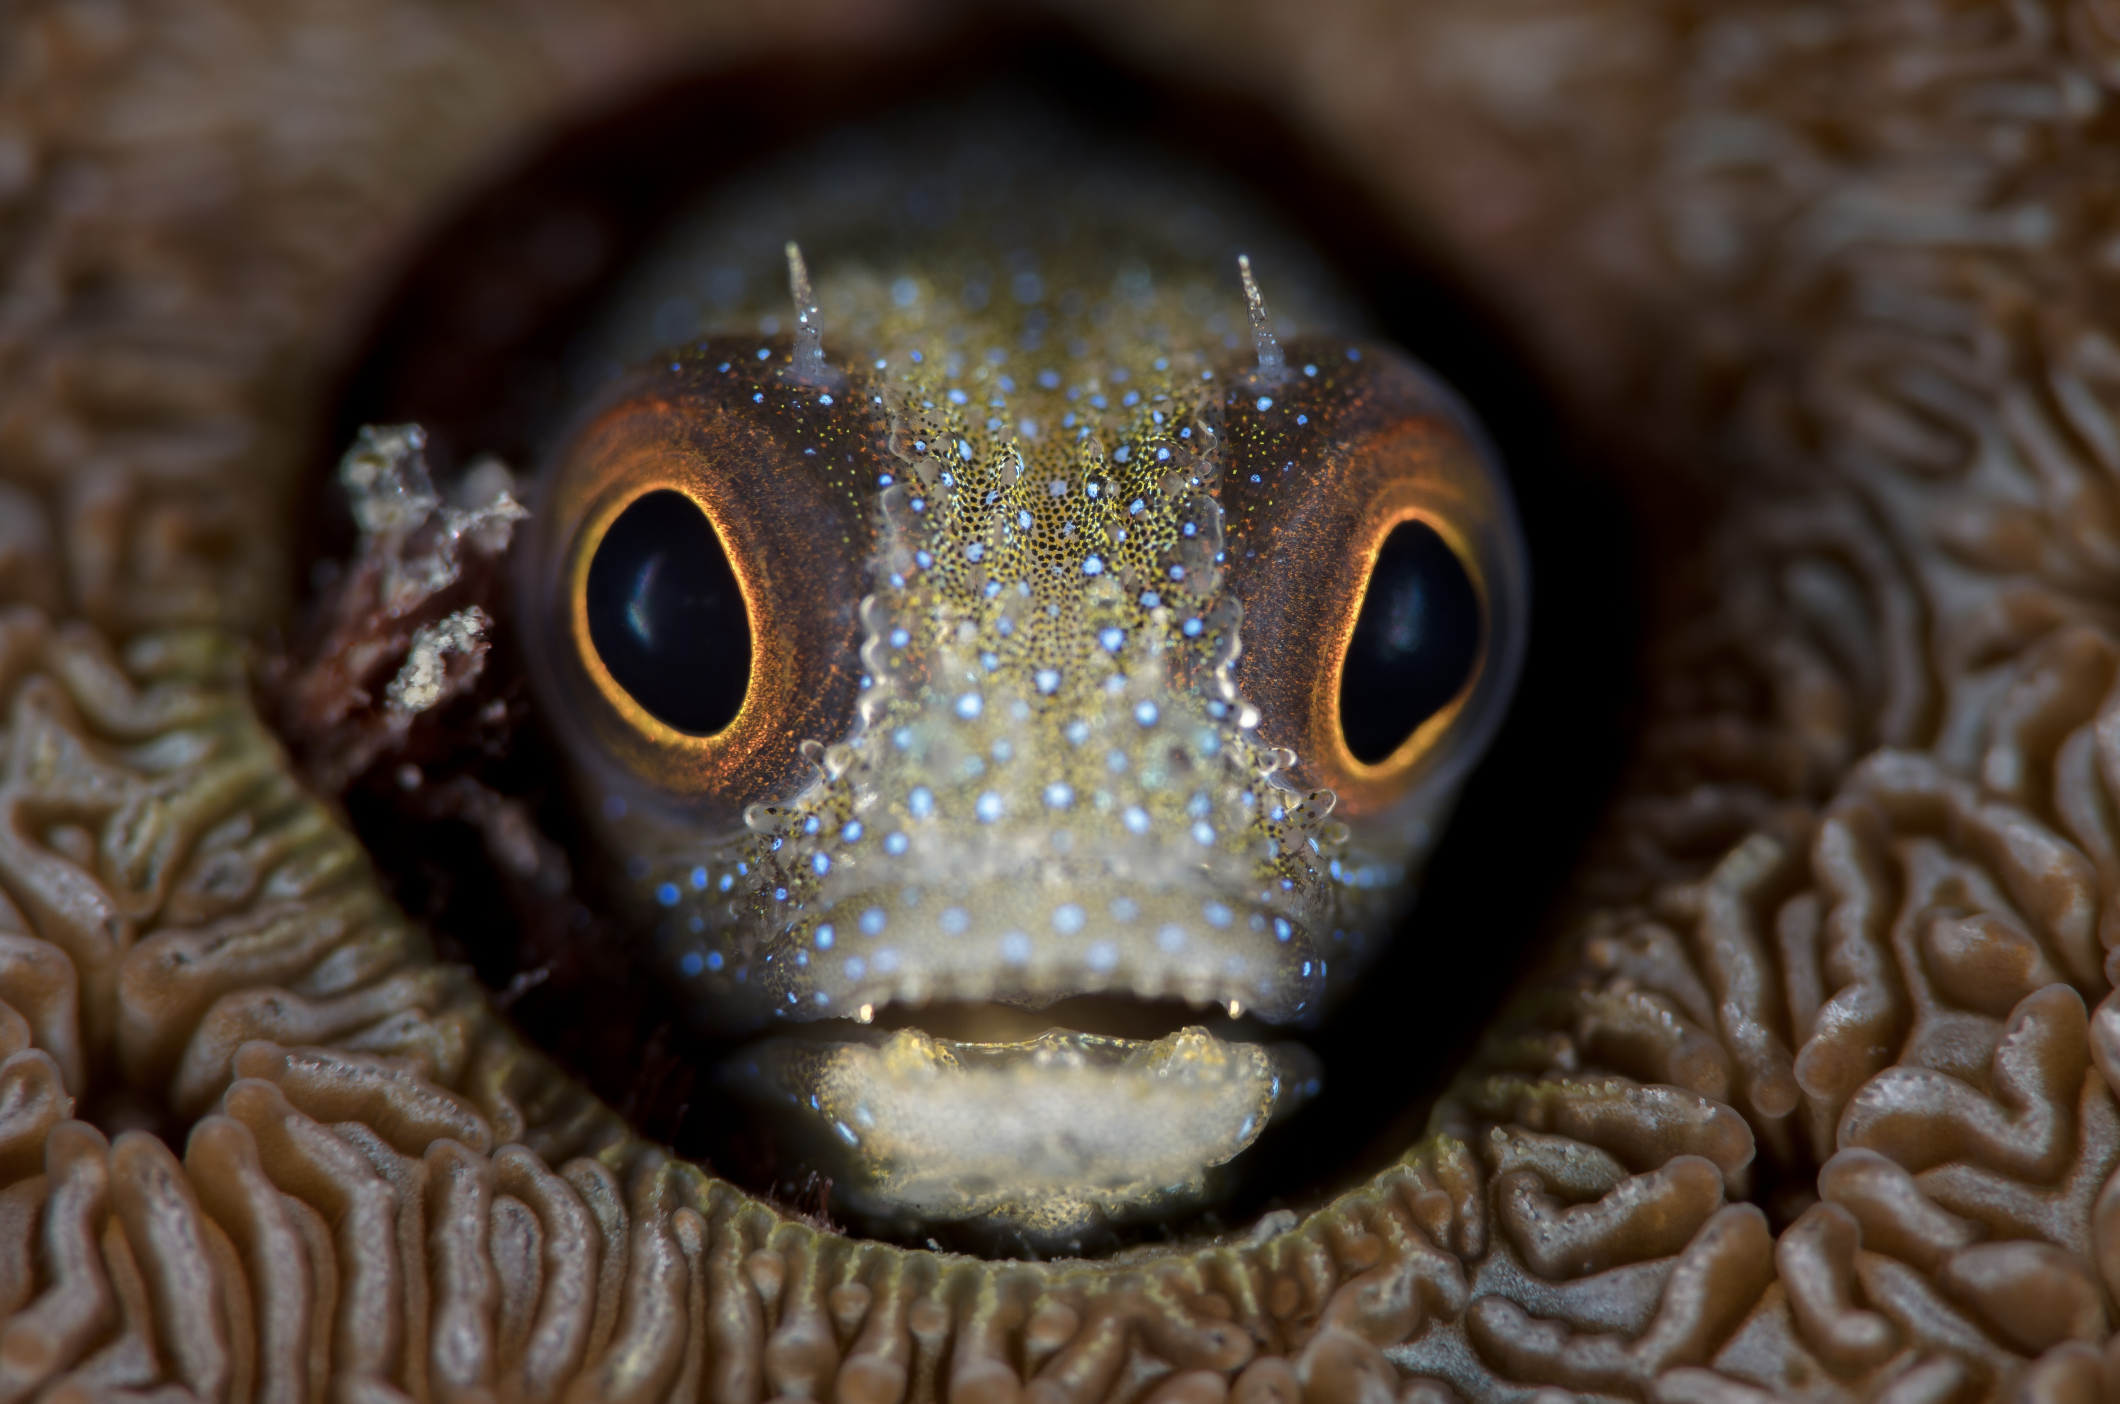 blenny credit: hannes klostermann / coral reef image bank